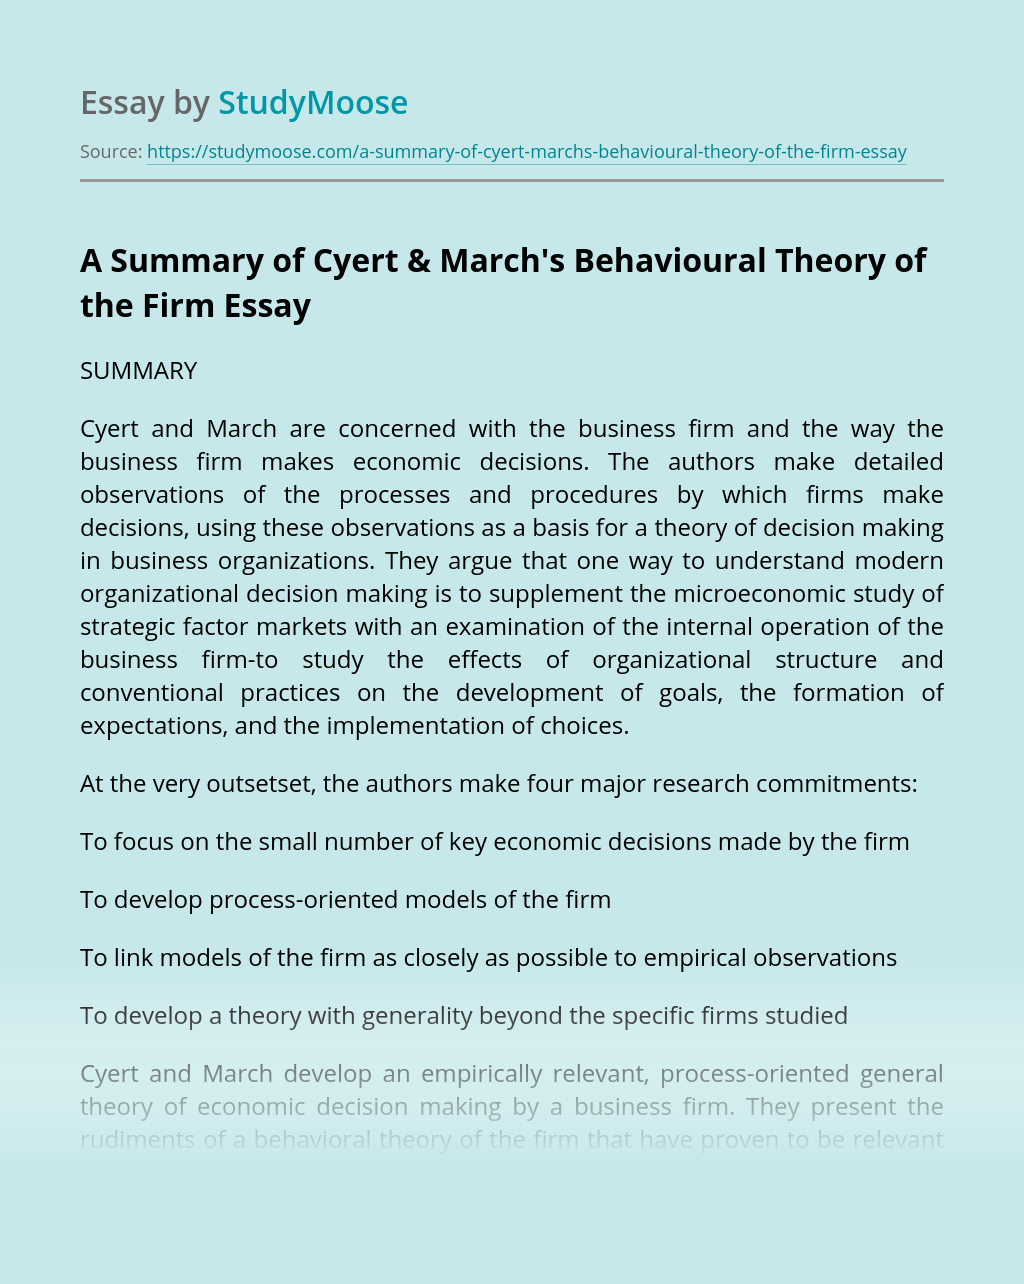 A Summary of Cyert & March's Behavioural Theory of the Firm